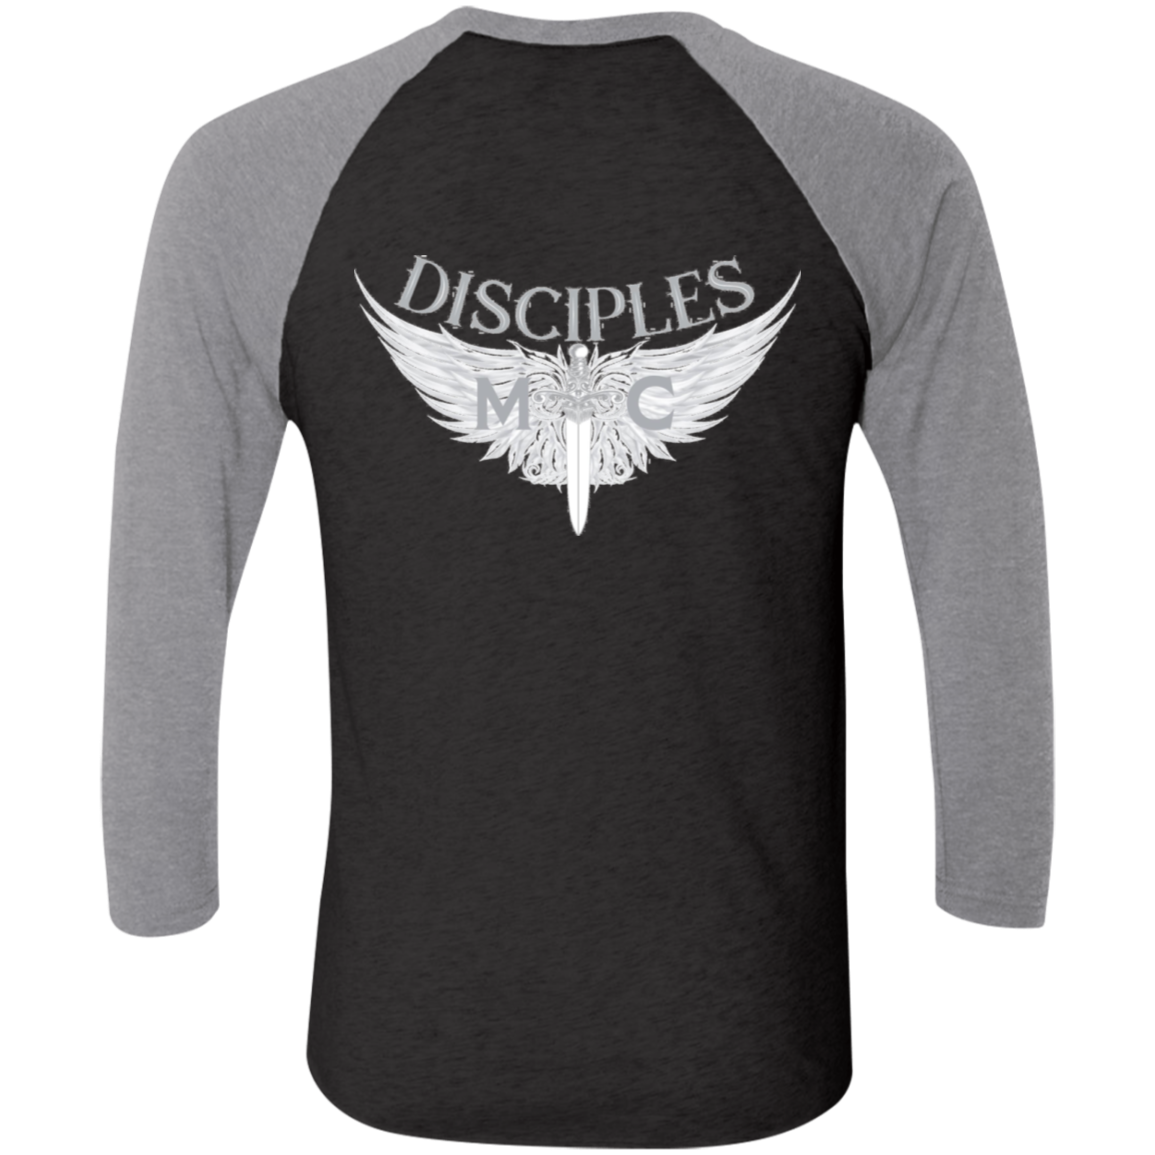 Disciples MC White Tri-Blend 3/4 Sleeve Baseball Raglan T-Shirt